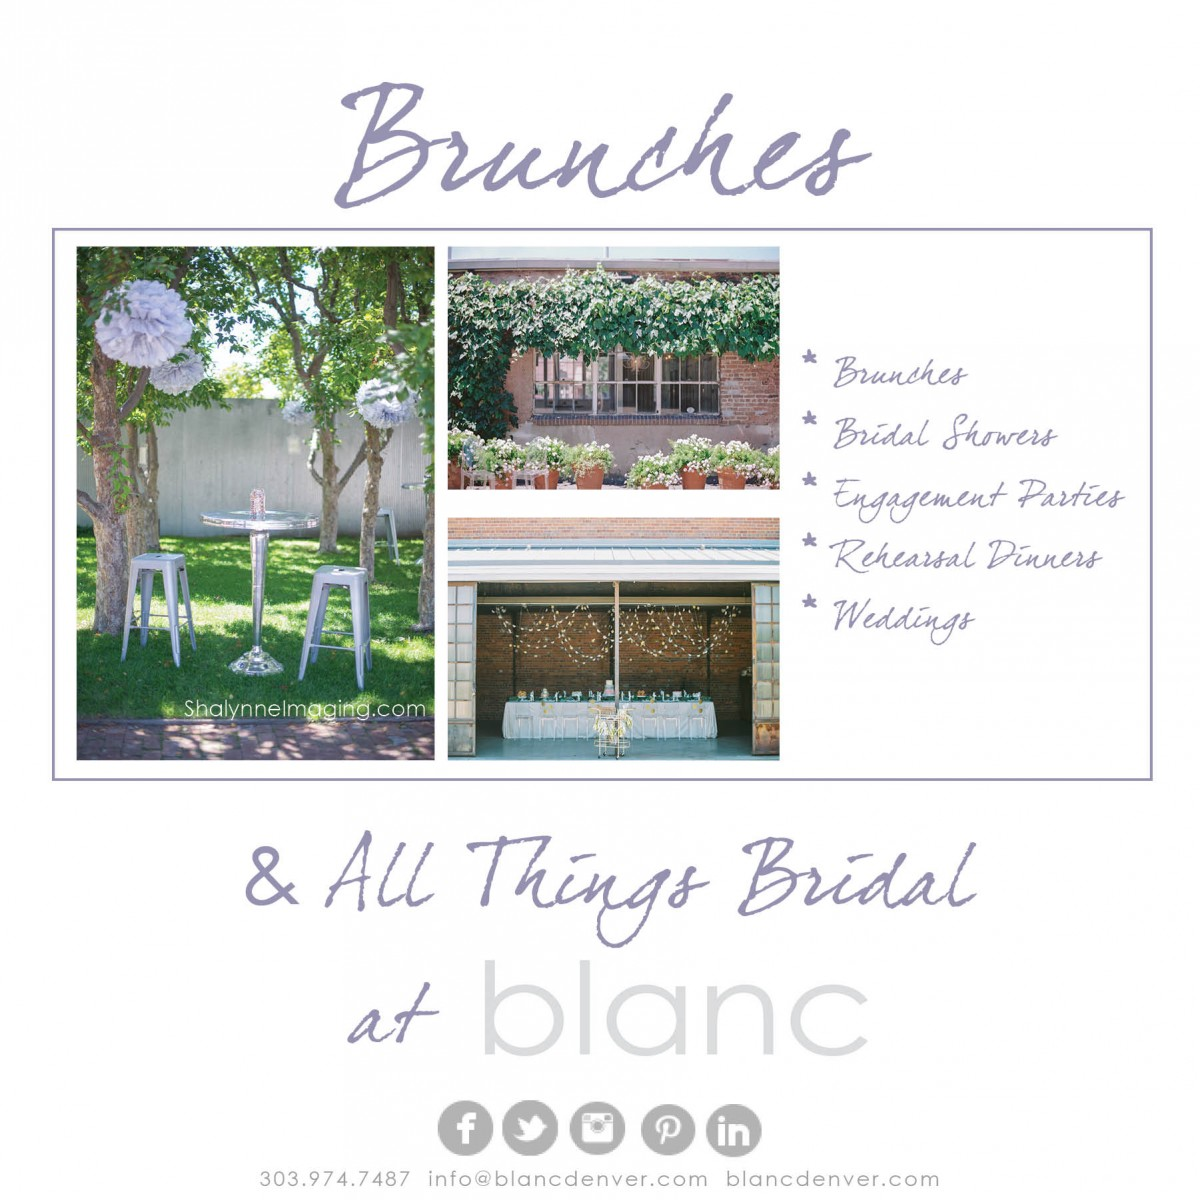 Brunches & All Things Bridal at blanc!